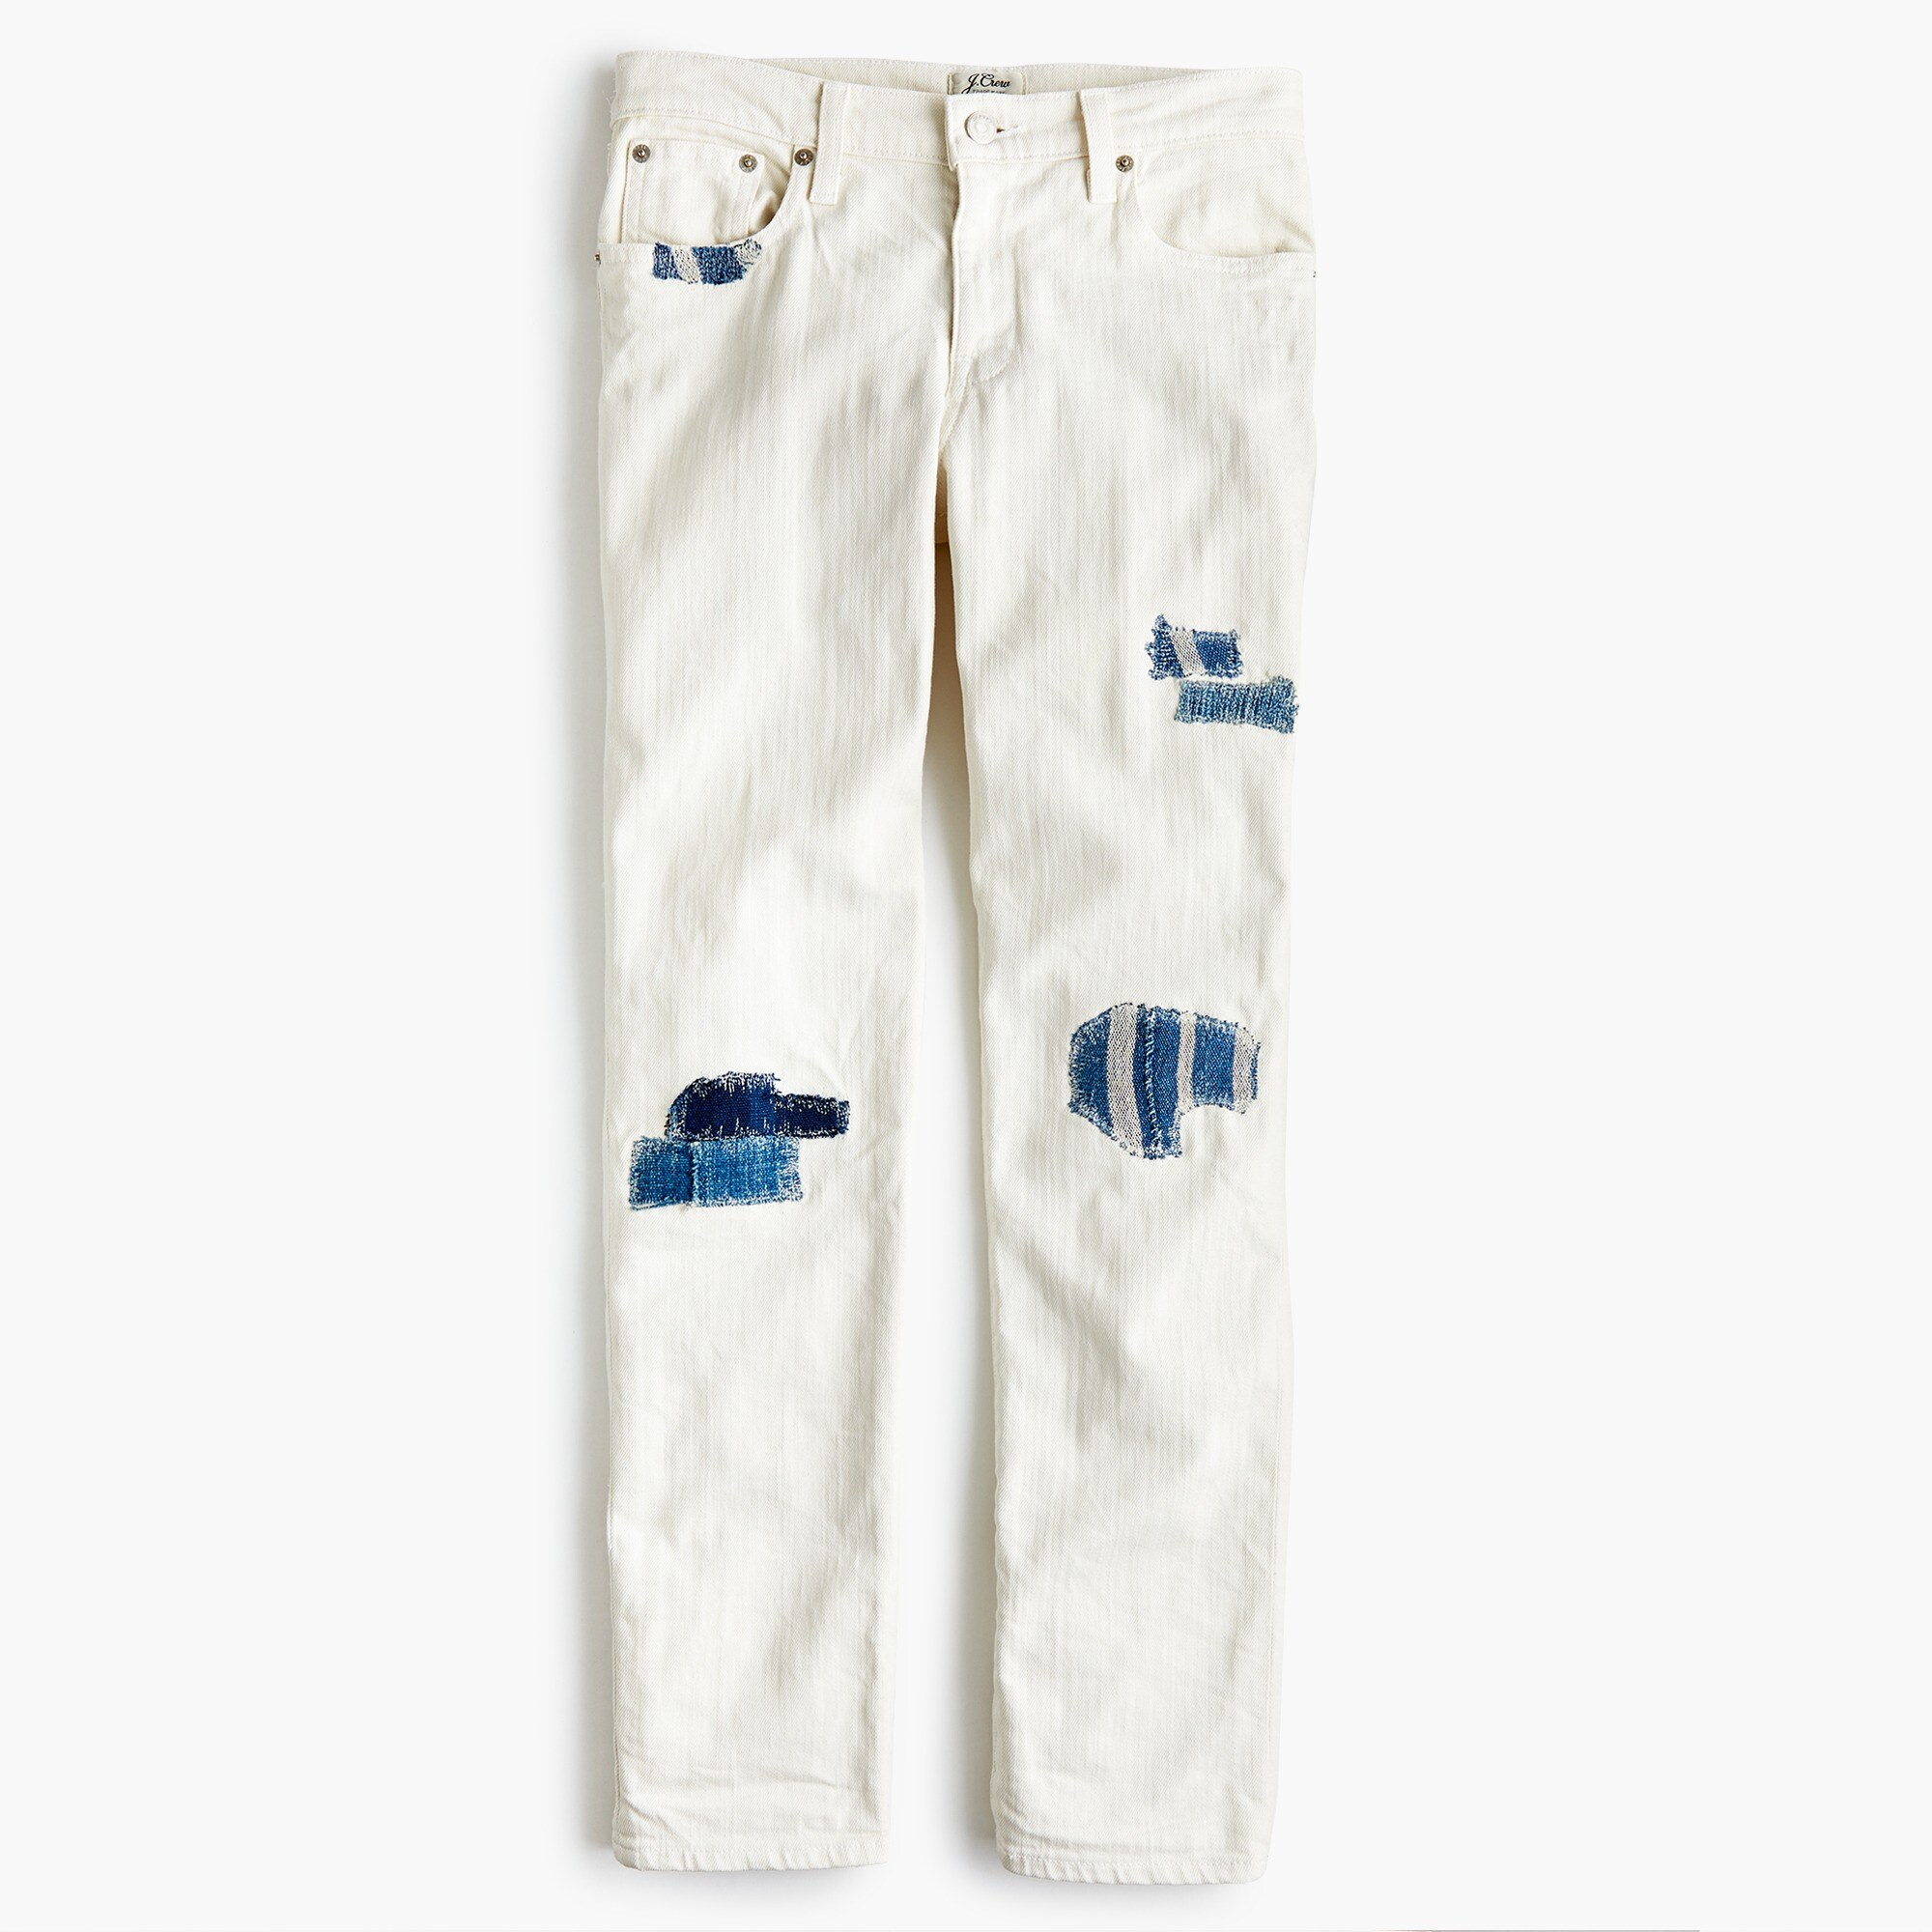 sean hornbeak for j.crew slim boyfriend jean with indigo patches in white : women boyfriend